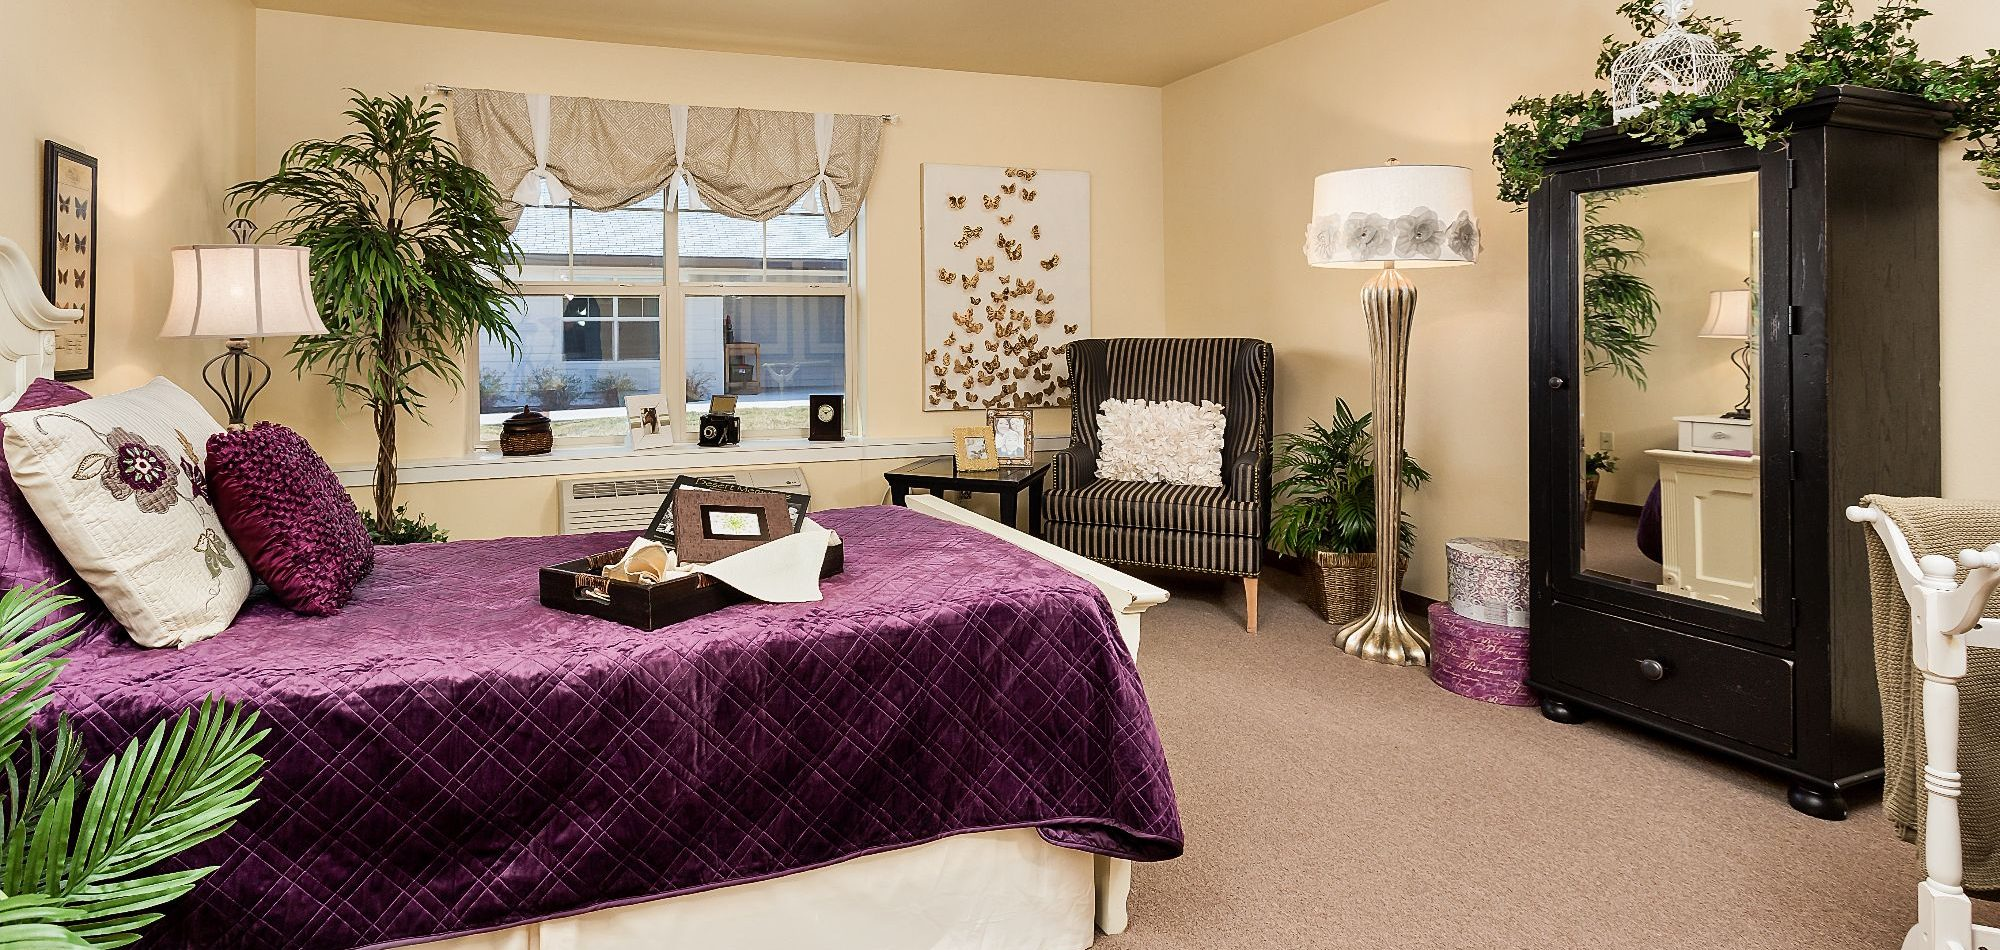 Tips For Decorating Bedrooms For Elderly People - England ...